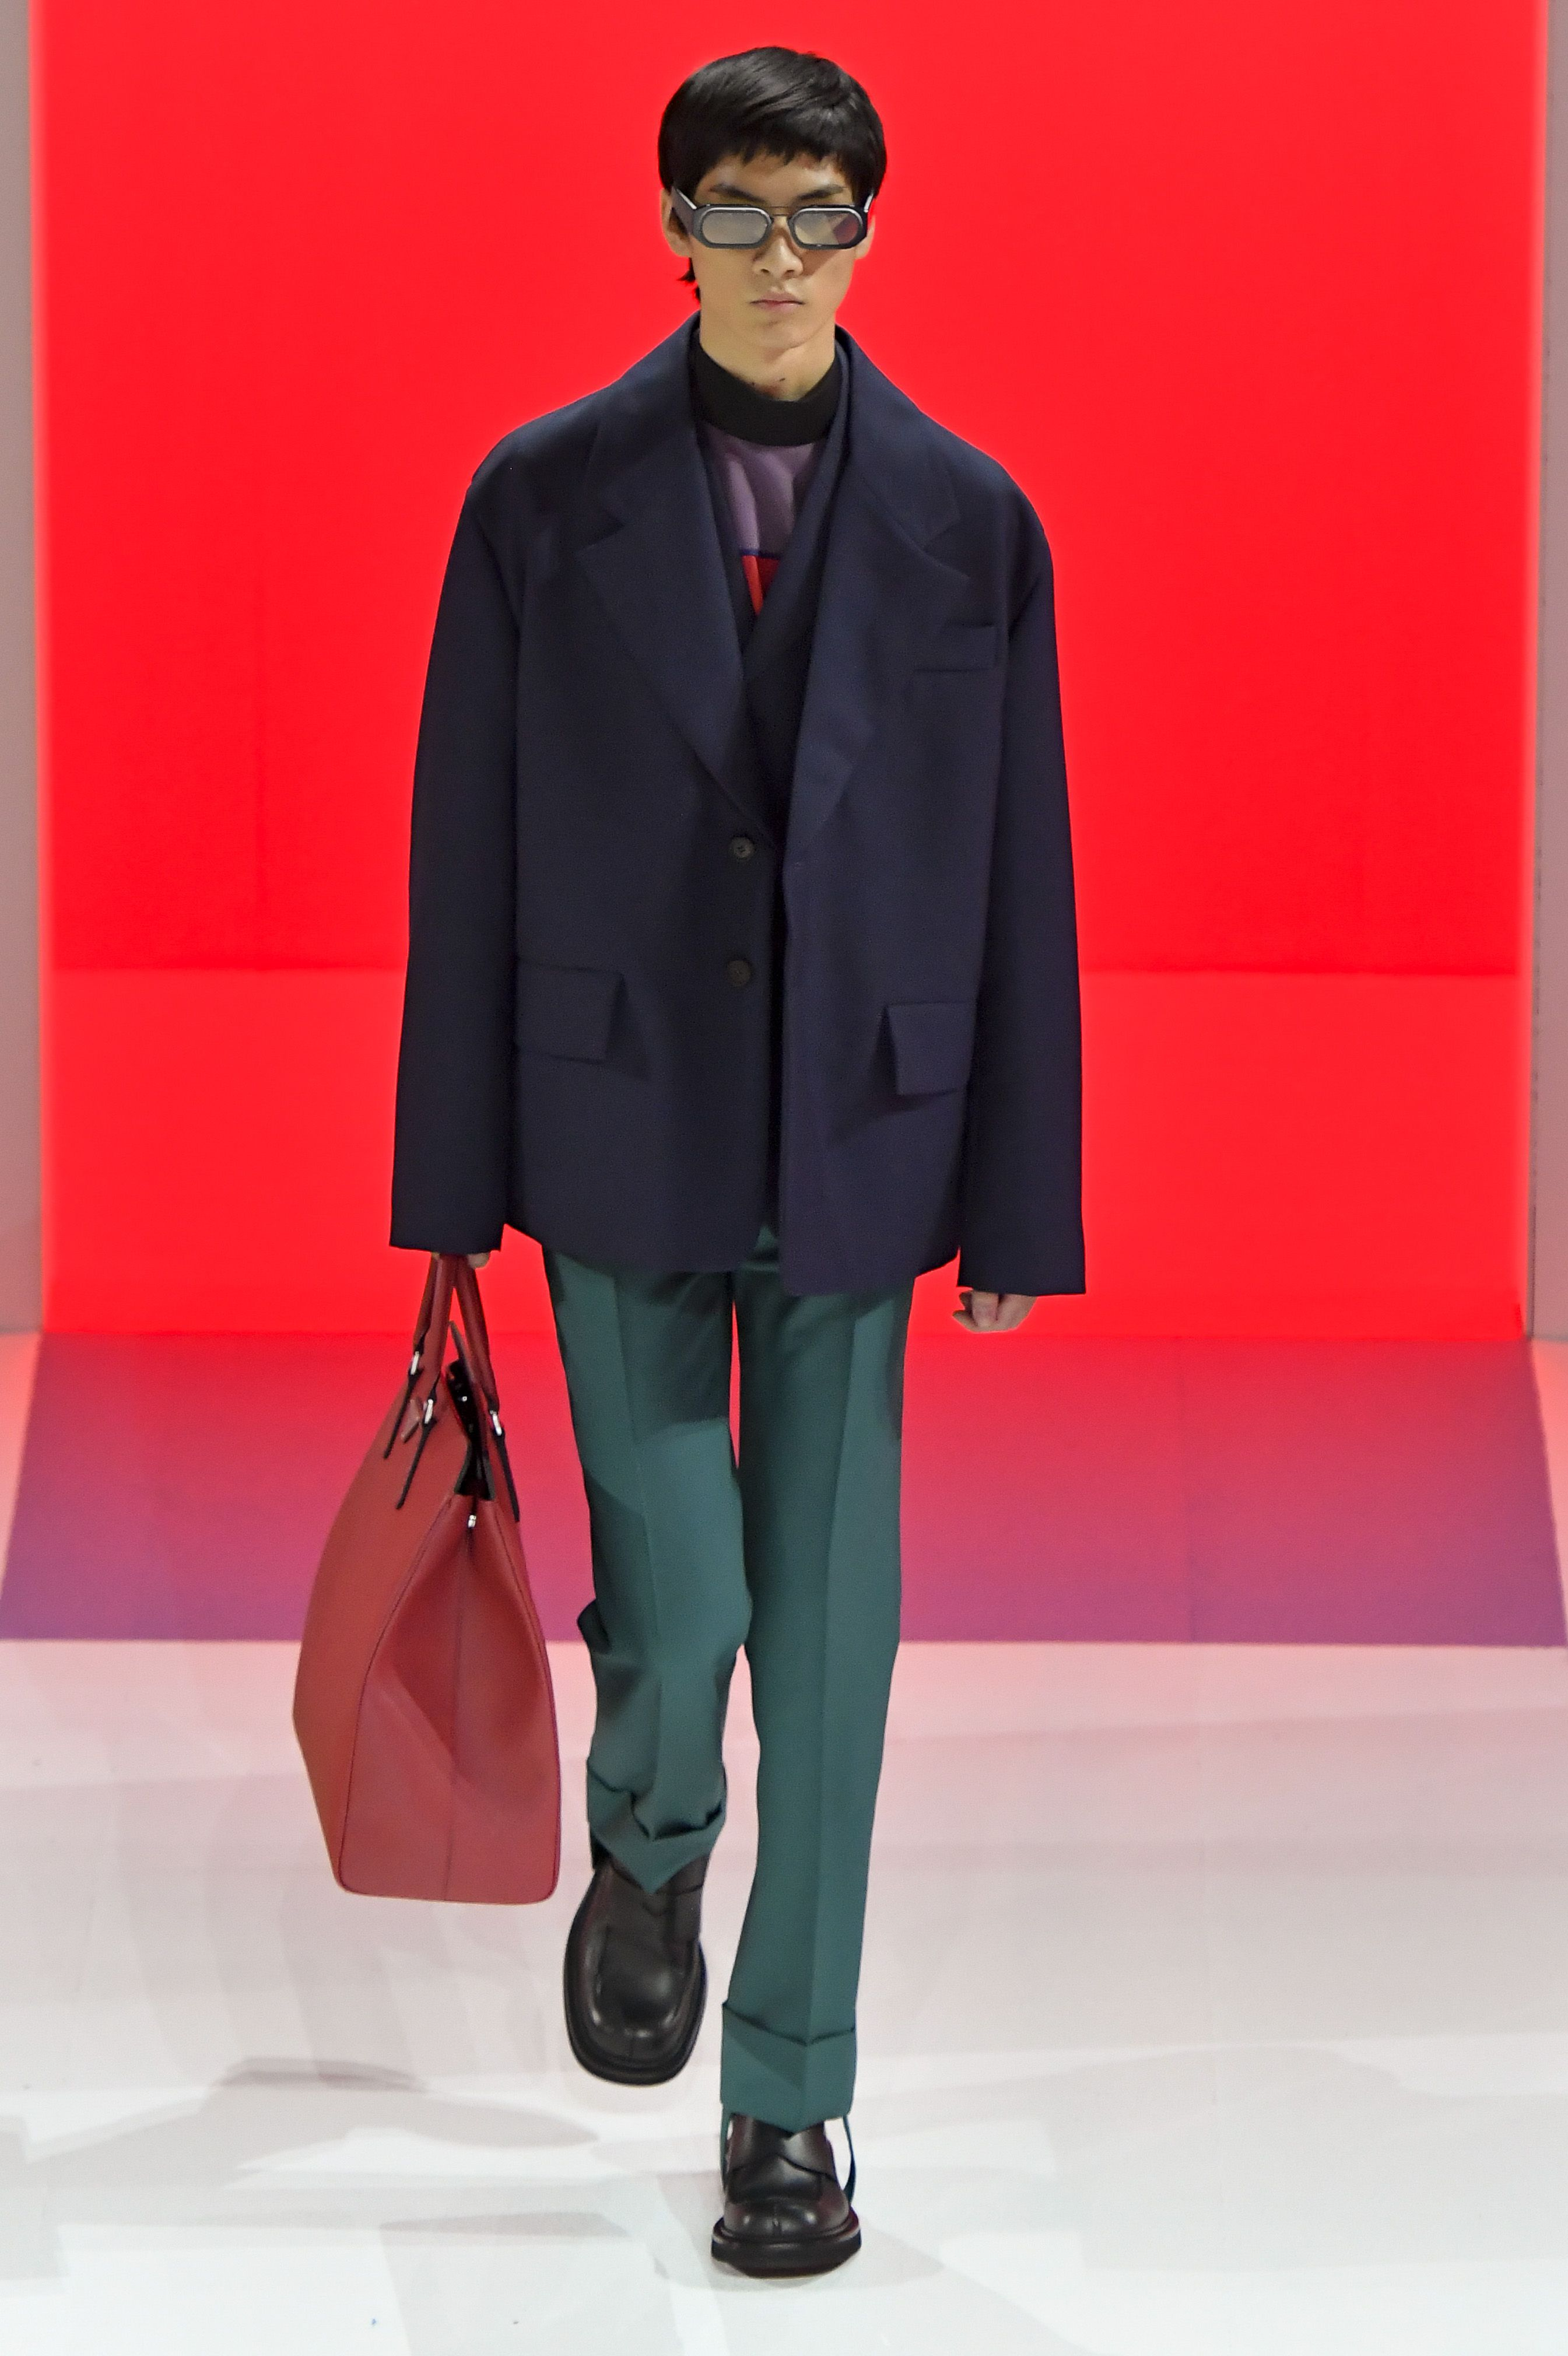 Prada - Runway - Milan Men's Fashion Week Fall/Winter 2020/2021